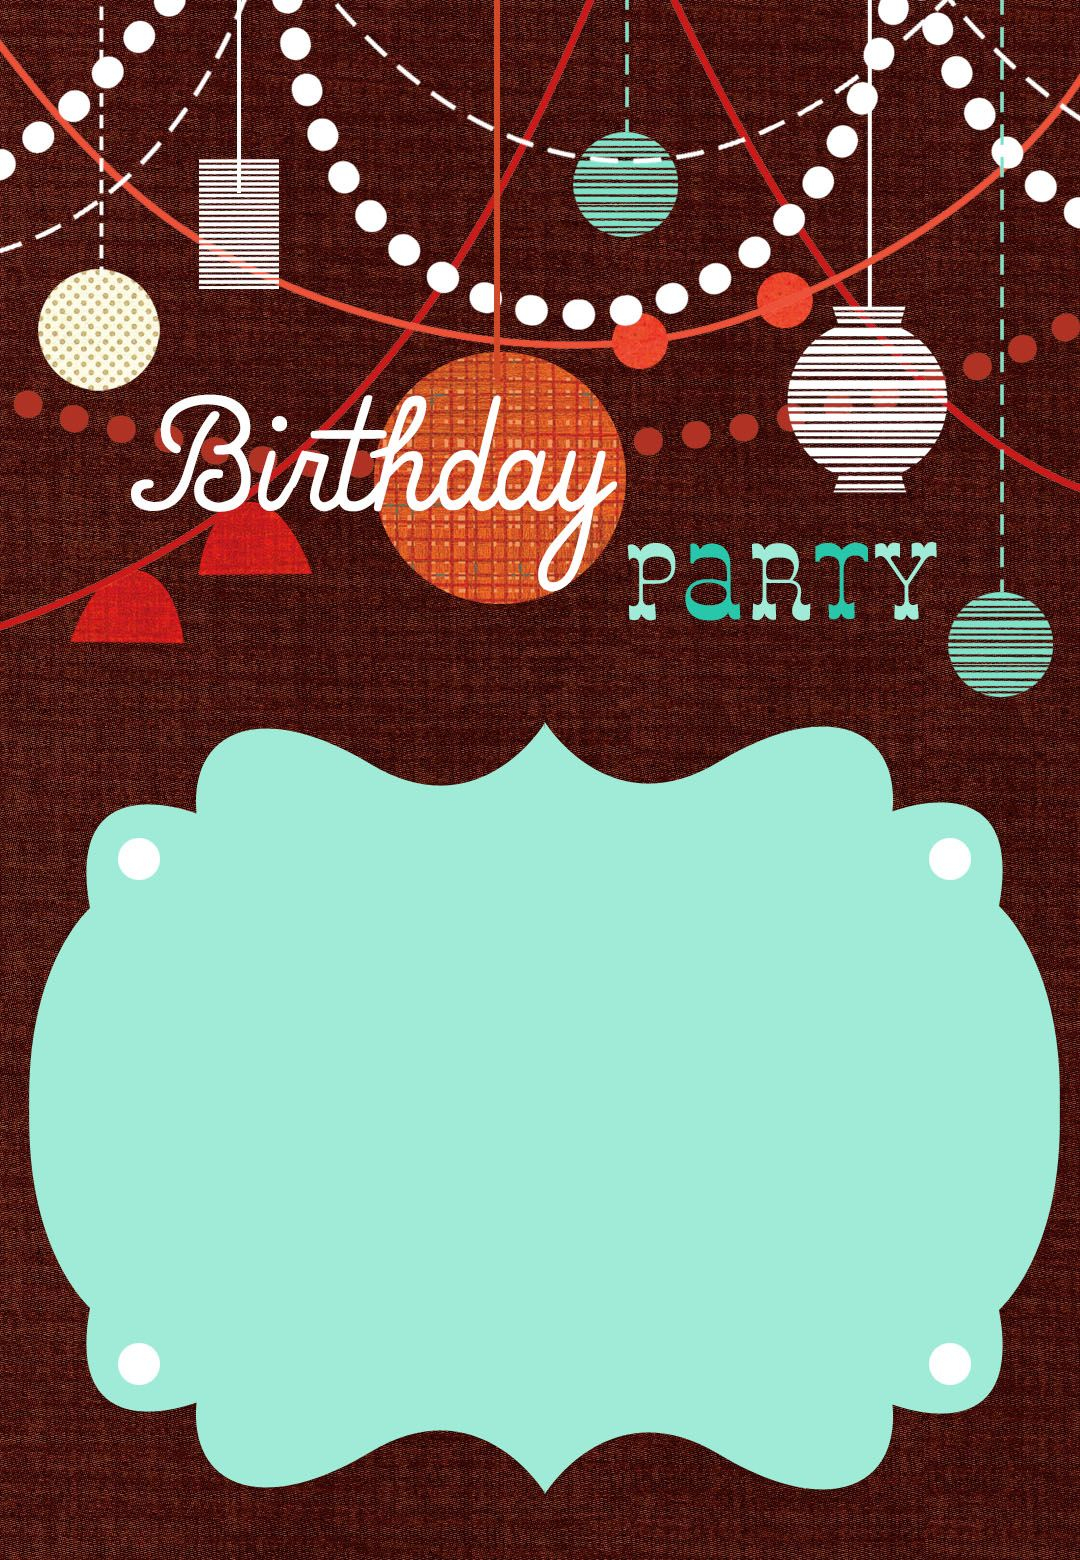 graphic about Free Printable Birthday Decorations titled Classic Birthday Get together Invitation Template Invitation